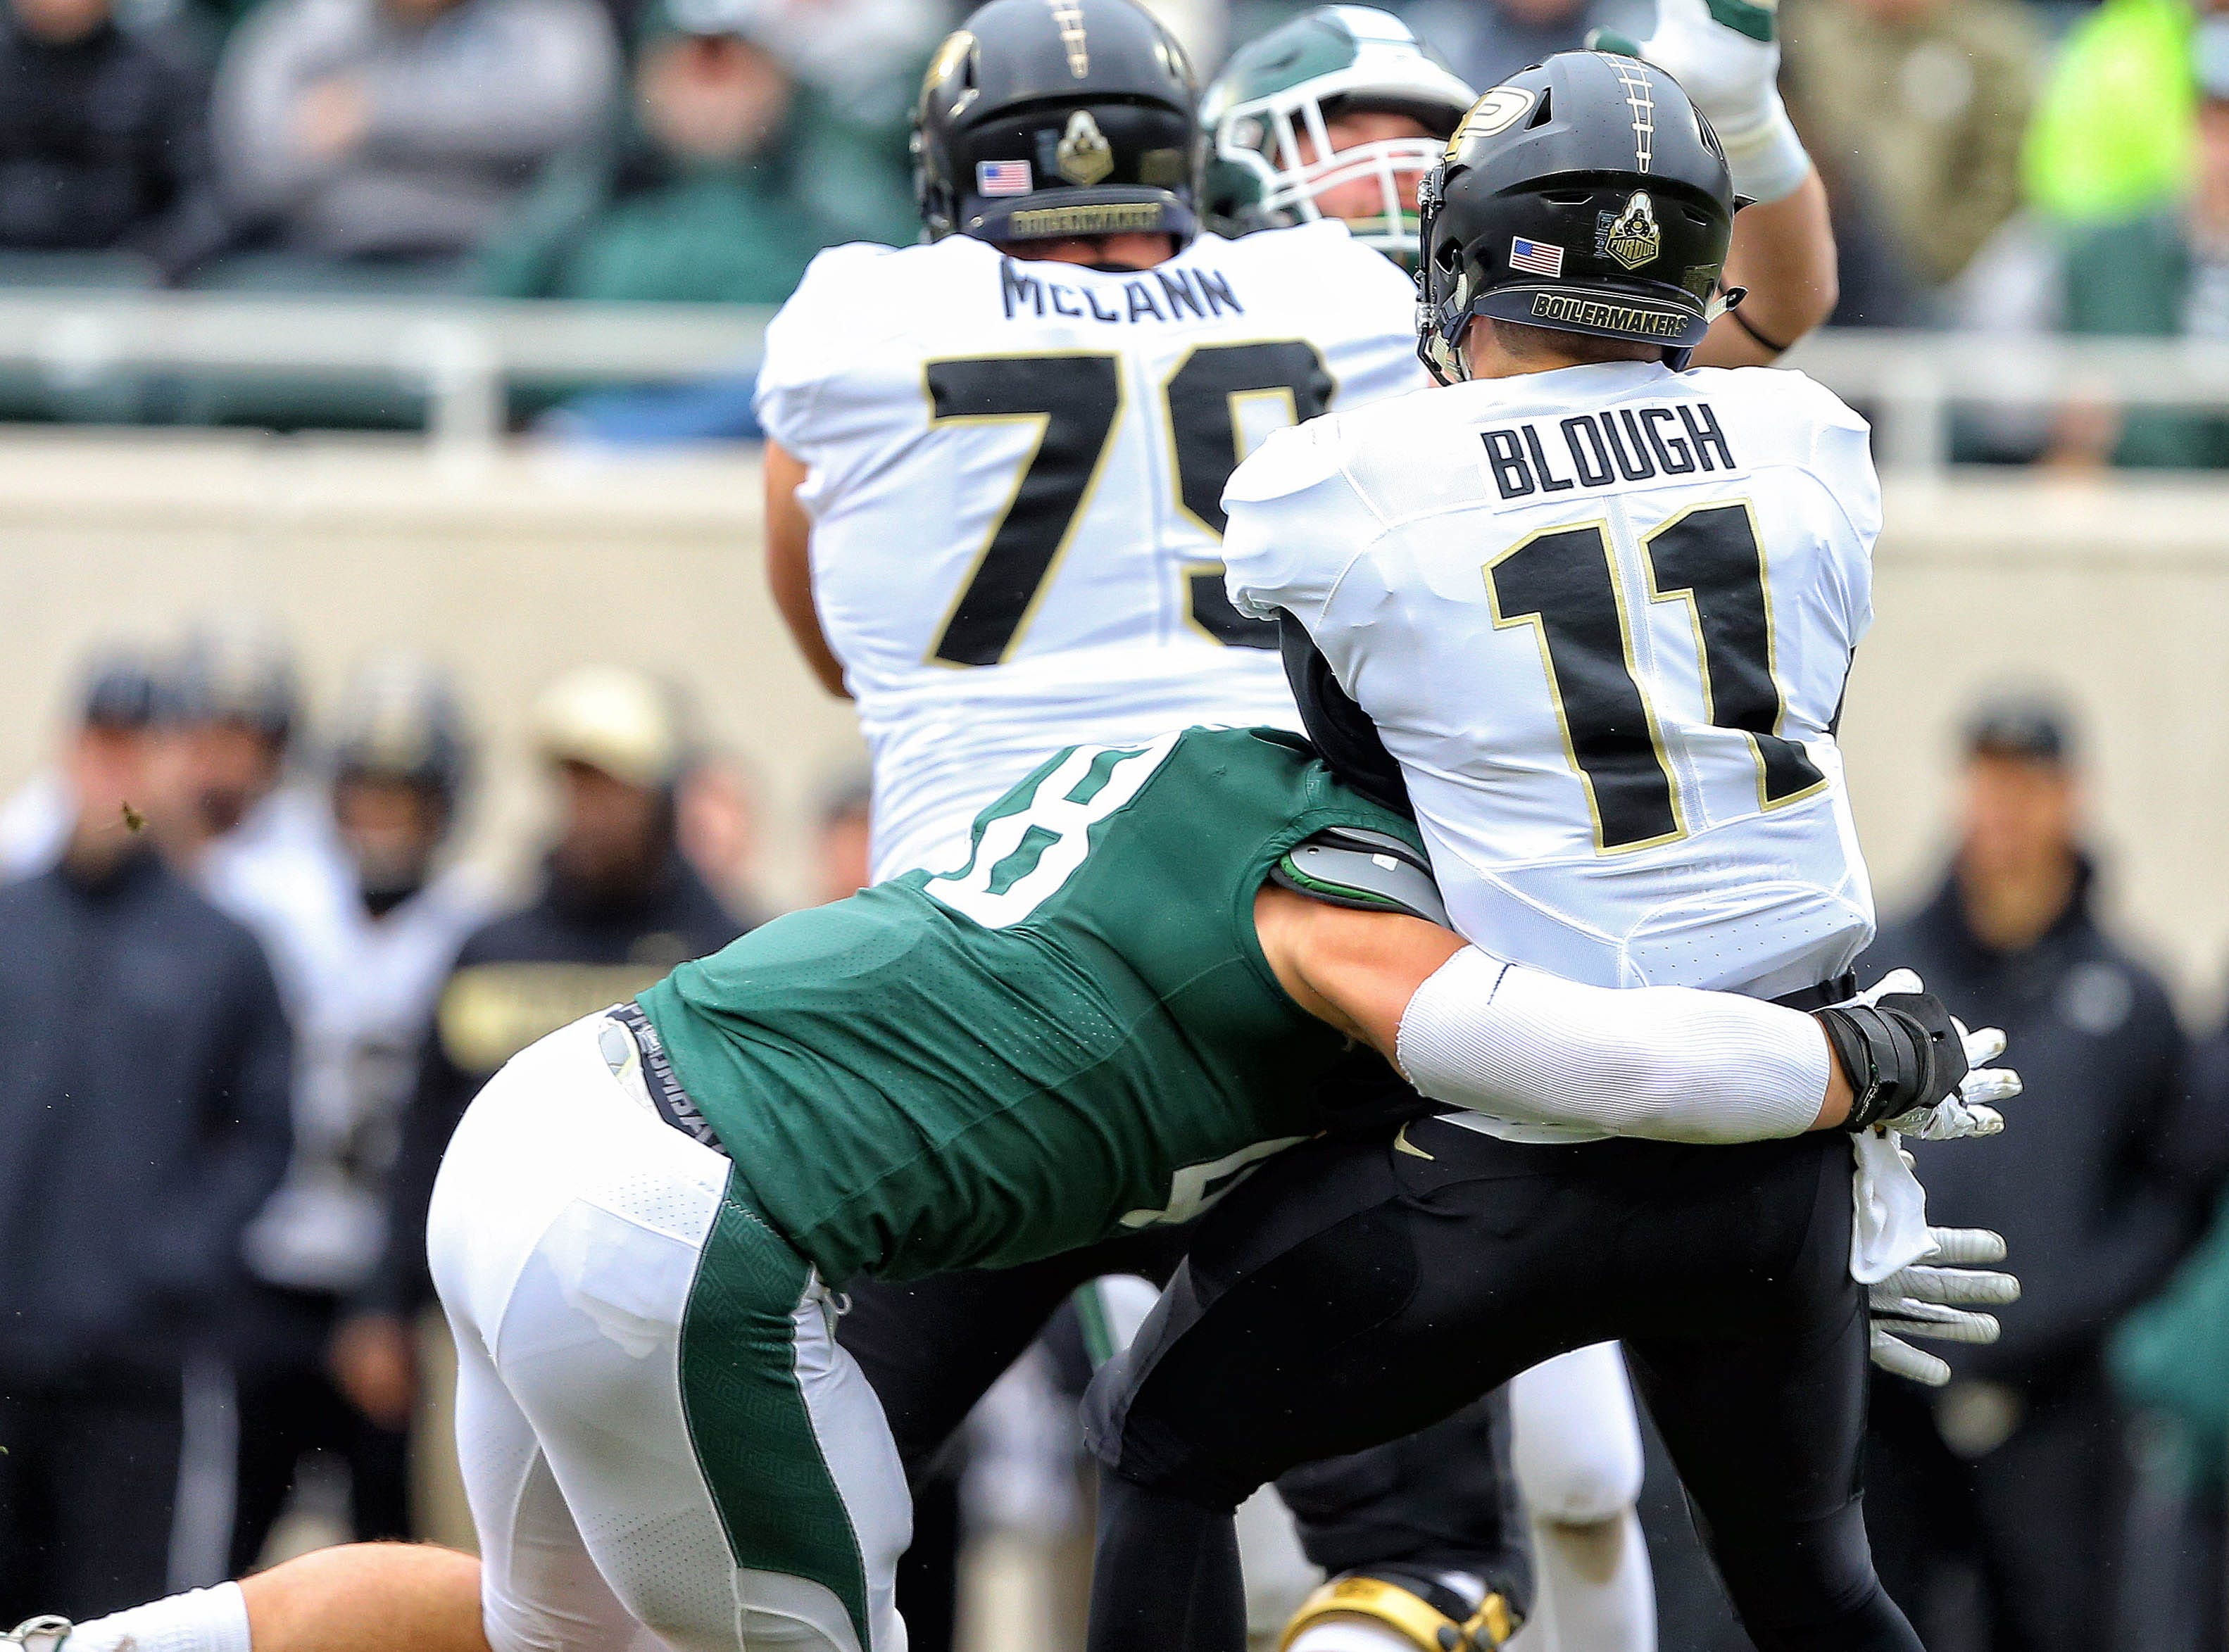 Oct 27, 2018; East Lansing, MI, USA; Purdue Boilermakers quarterback David Blough (11) is sacked by Michigan State Spartans defensive end Kenny Willekes (48) during the first quarter of a game at Spartan Stadium. Mandatory Credit: Mike Carter-USA TODAY Sports